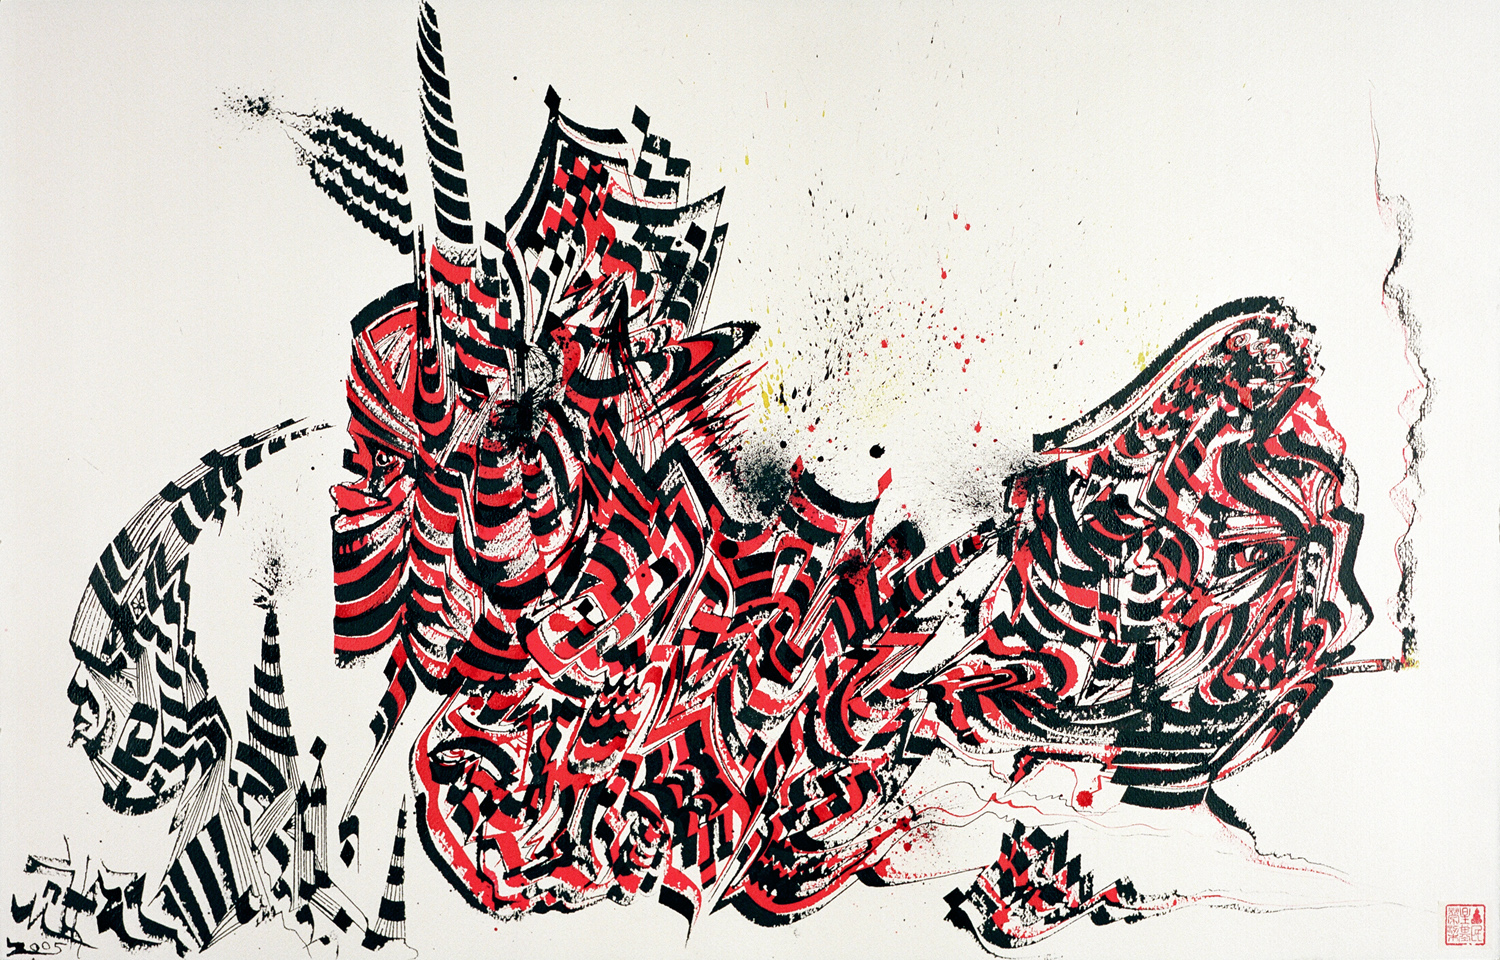 École Samurai, 2005 sumi ink on handmade paper 26 x 41 inch